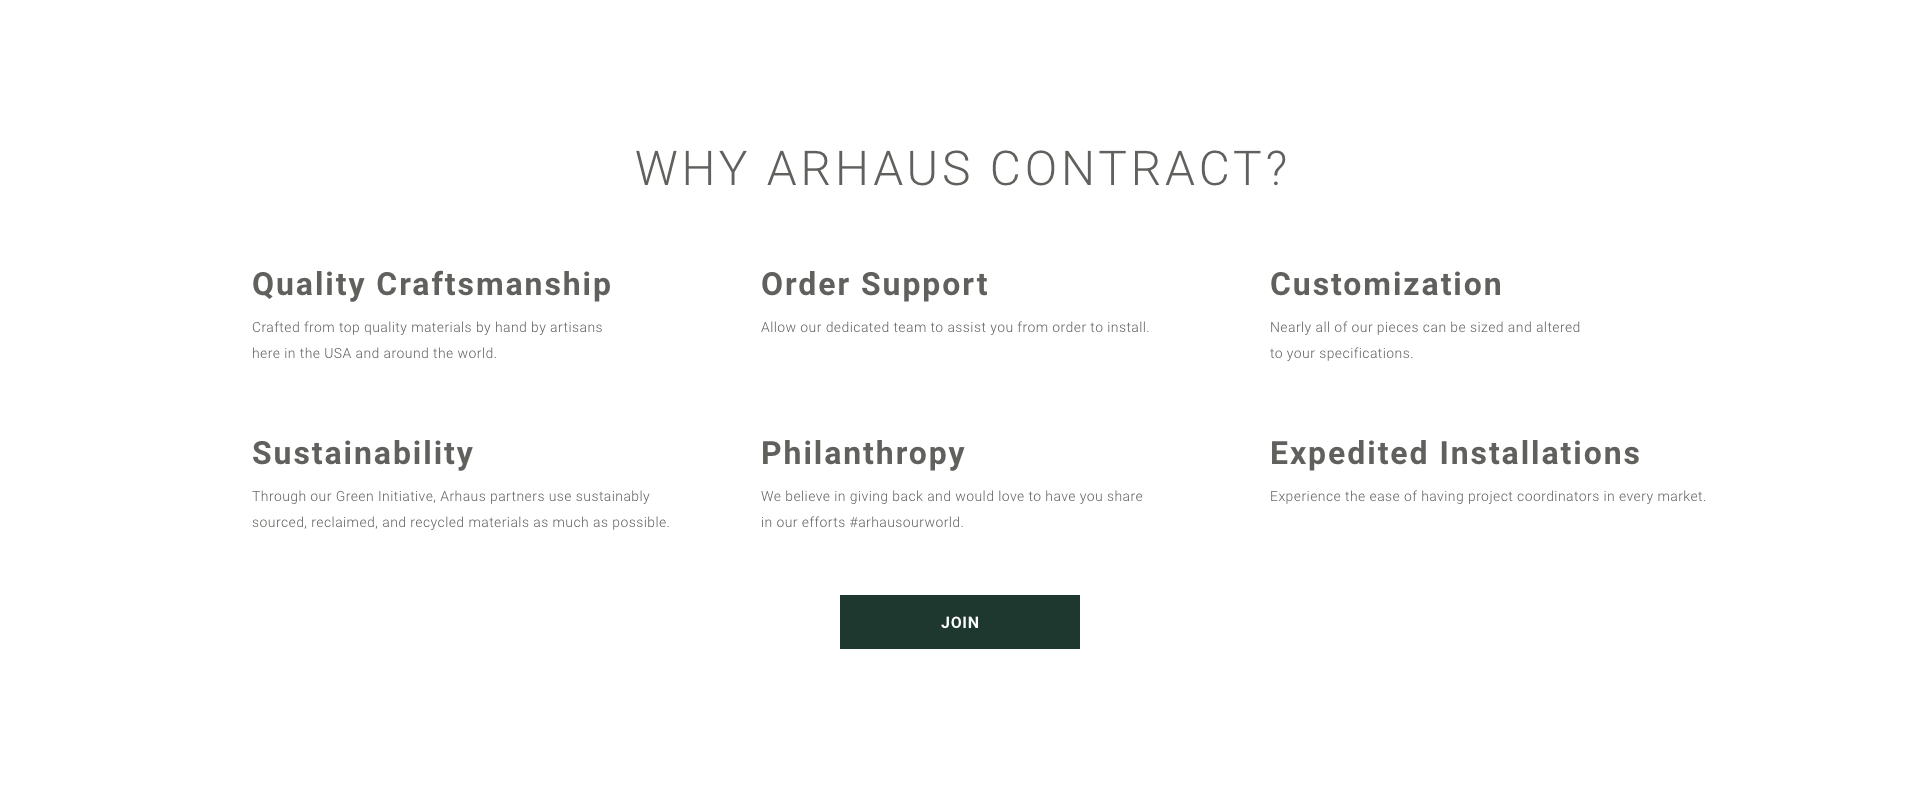 Why Arhaus Contract? Quality Craftsmanship, Sustainability, and Enhanced Support